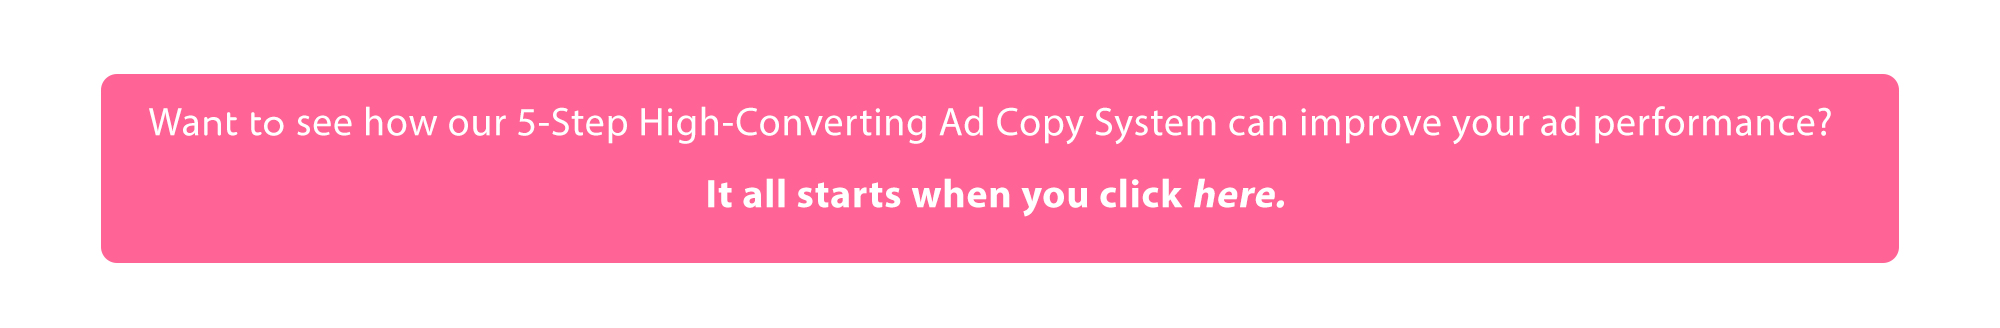 Create high-converting Facebook ad copy with Tier 11